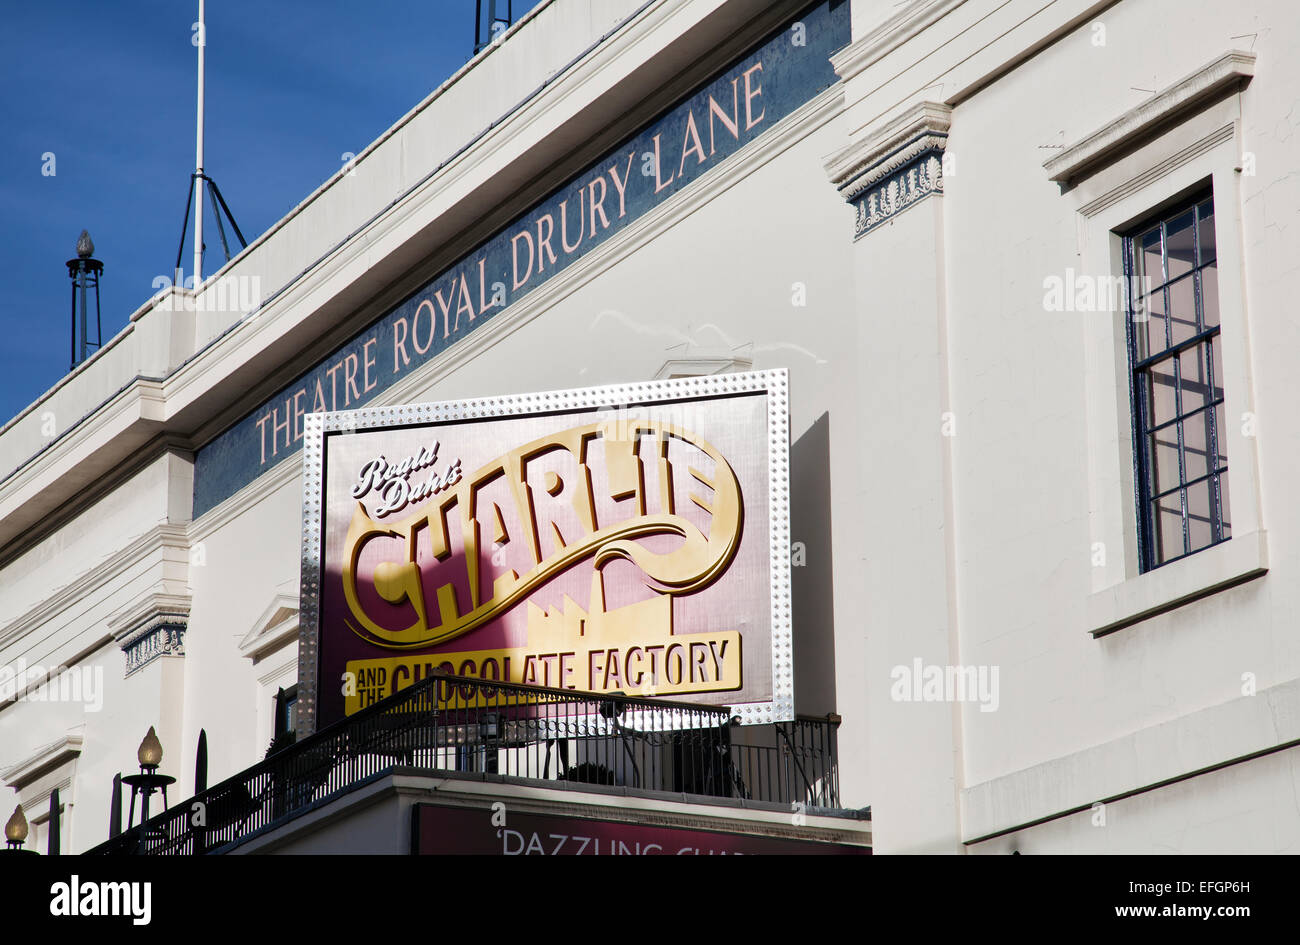 Charlie and the Chocolate Factory on Theatre Royal Drury Lane in Covent Garden in London UK - Stock Image